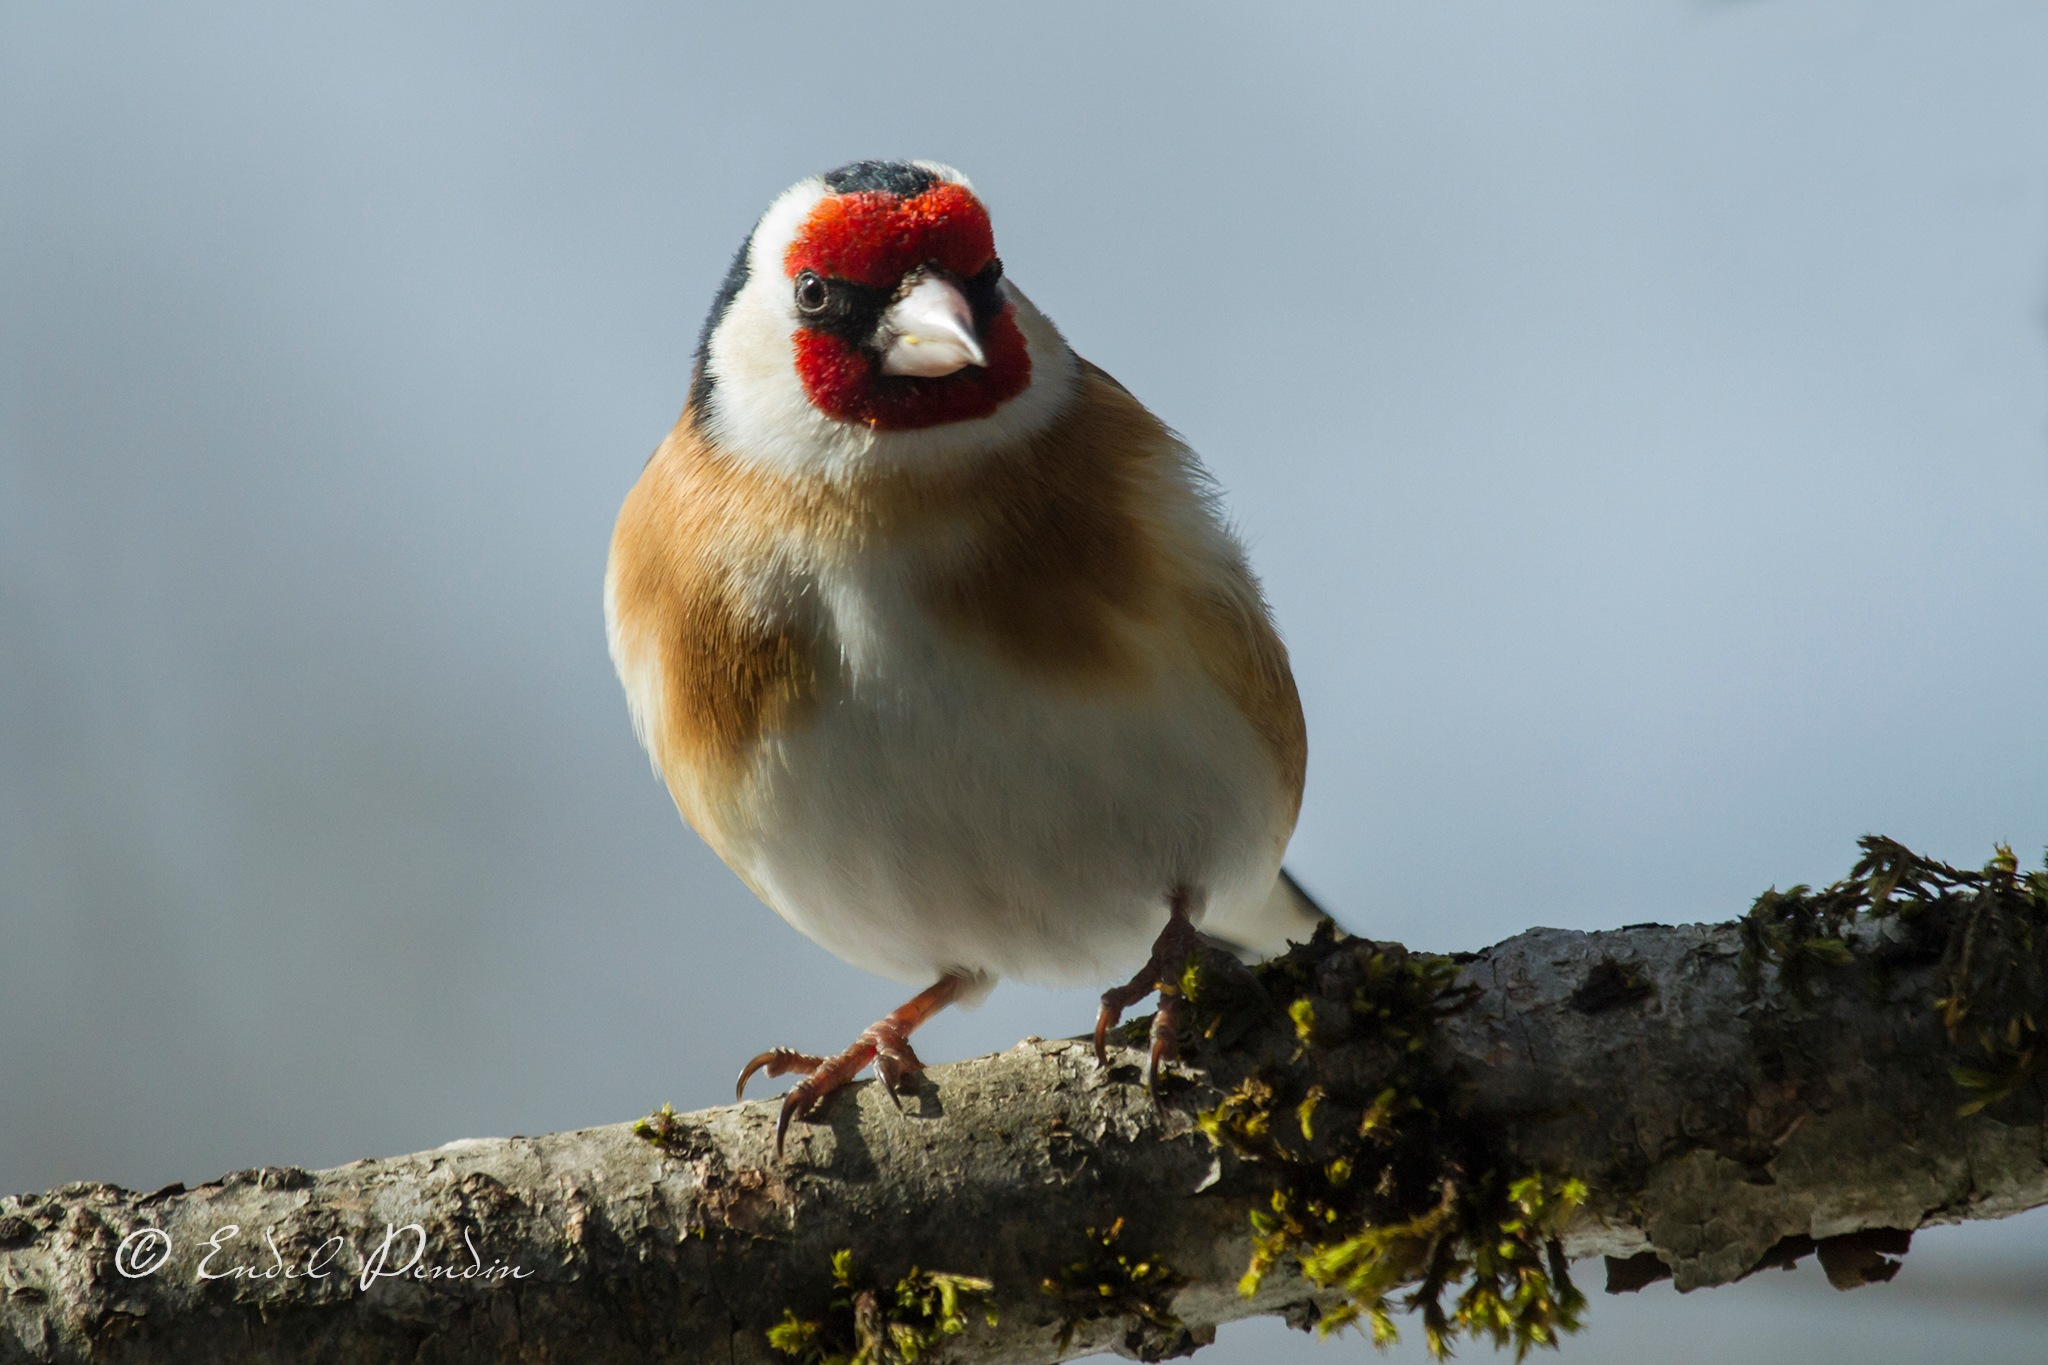 The European goldfinch or goldfinch (Carduelis carduelis) by sarvikpytt